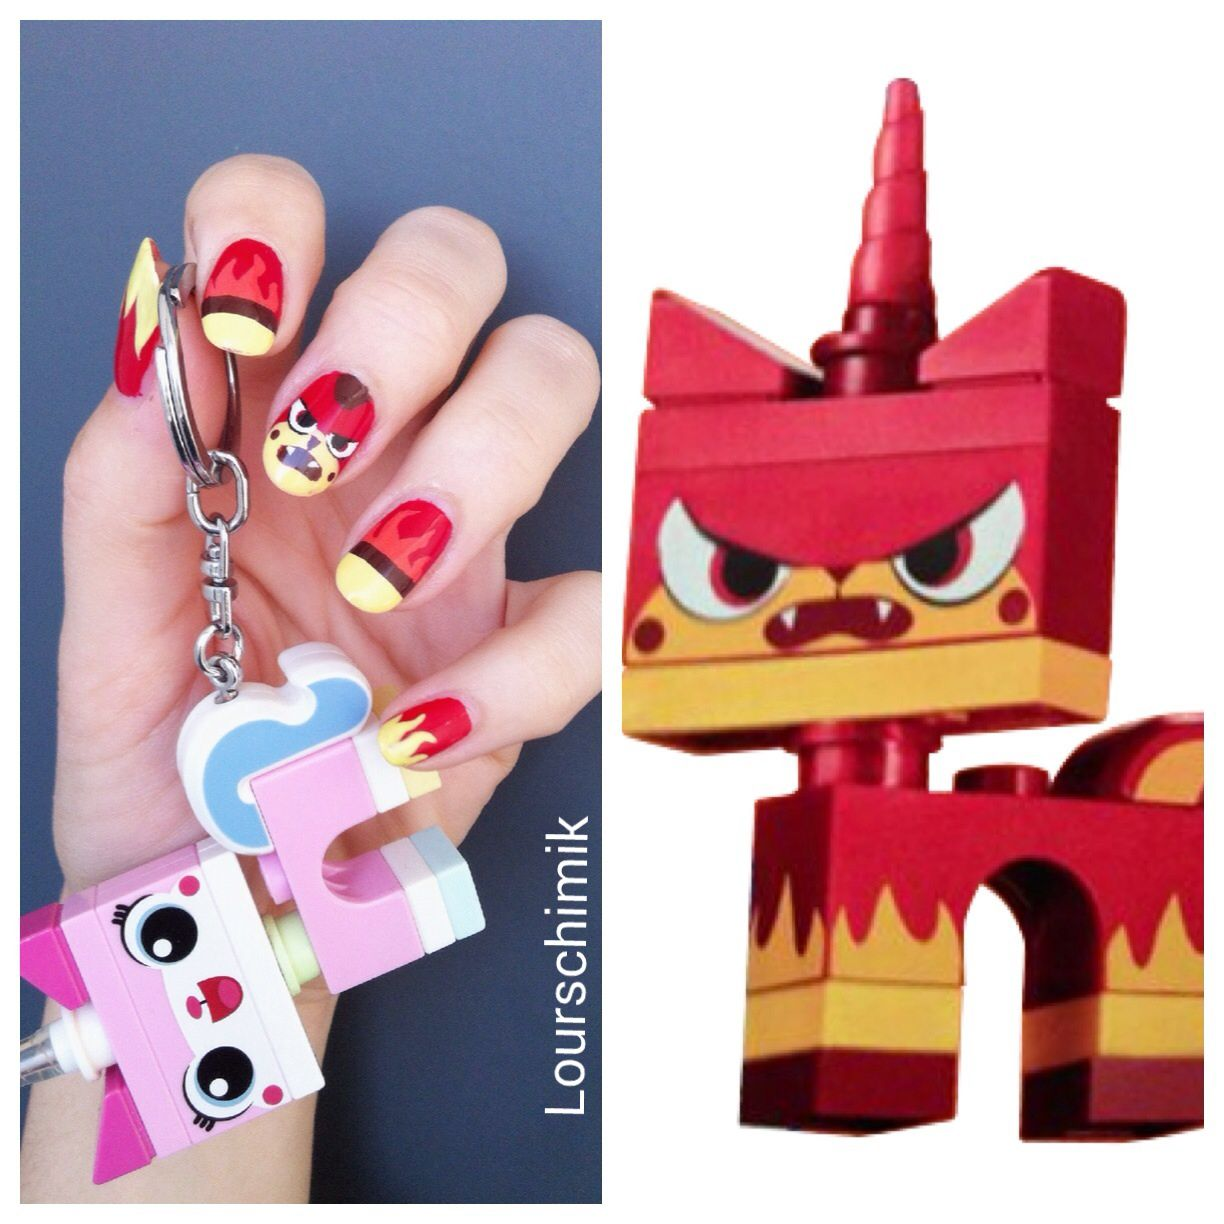 unikitty nail art - dark version + tuto